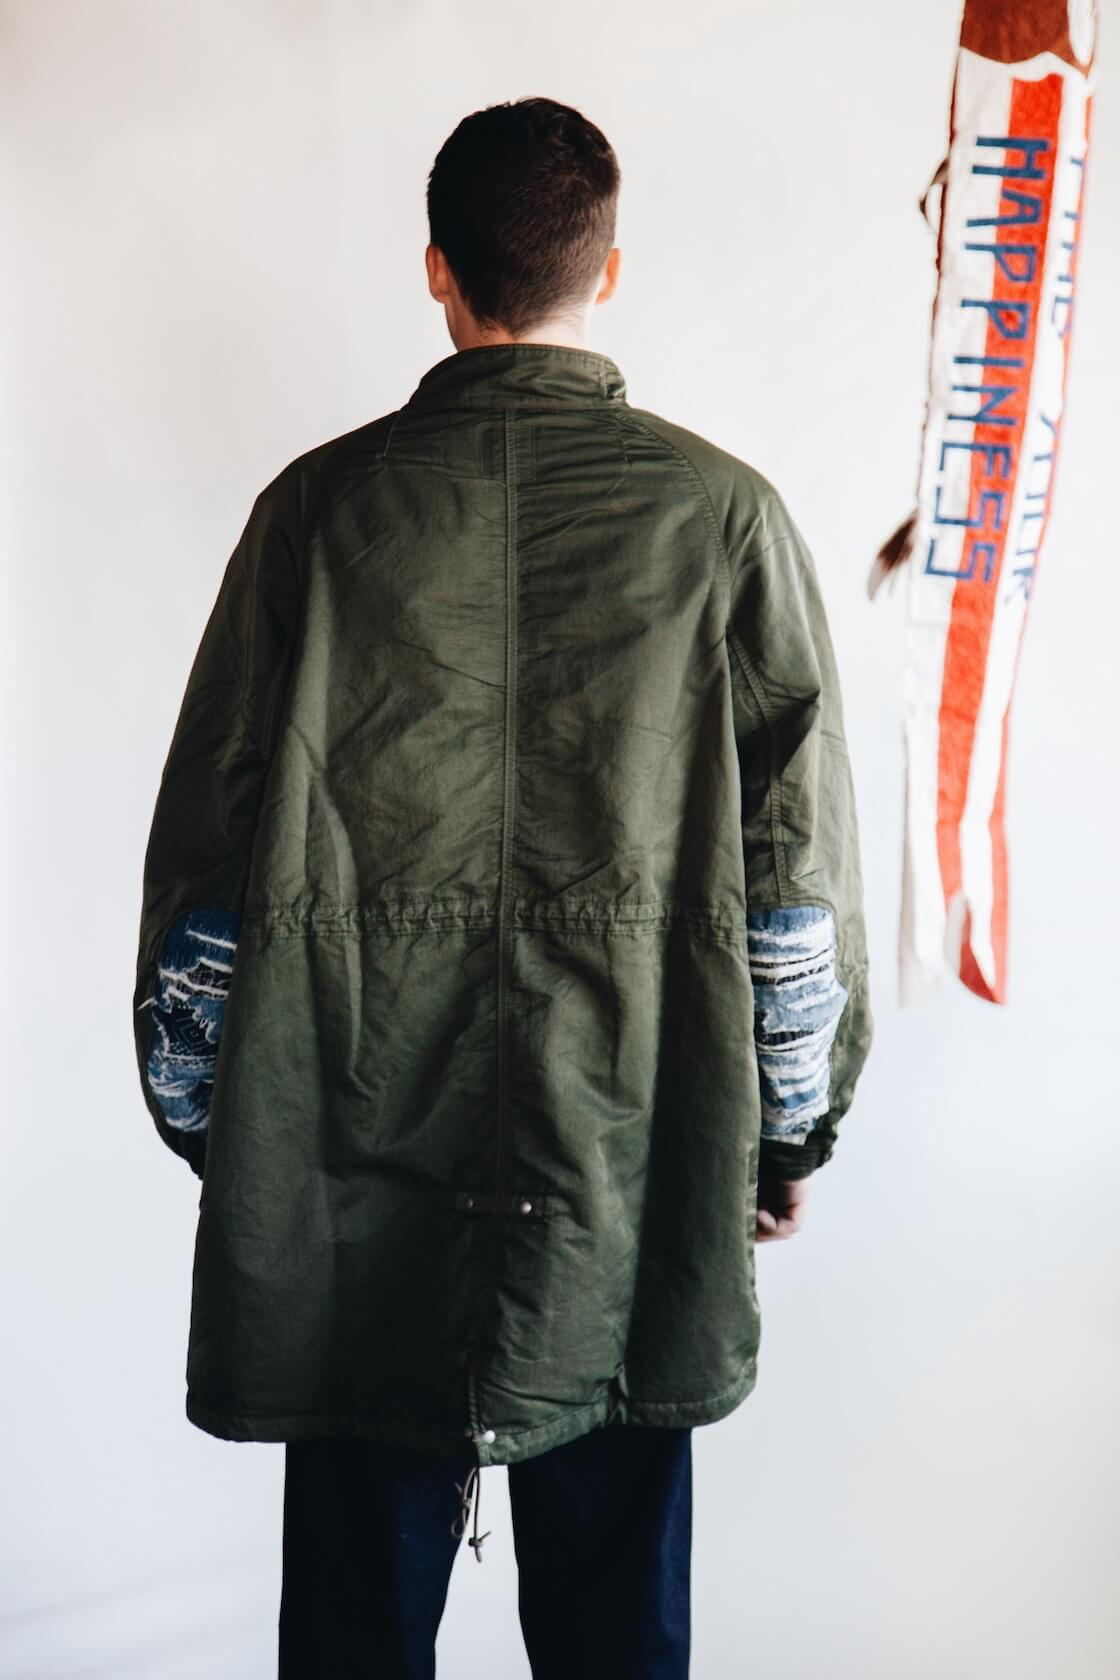 visvim indigo camping trading post find your happiness Six Five Fishtail Parka, Jumbo T Crash, SS Hakama Pants and Skagway Hi G Shoes on body